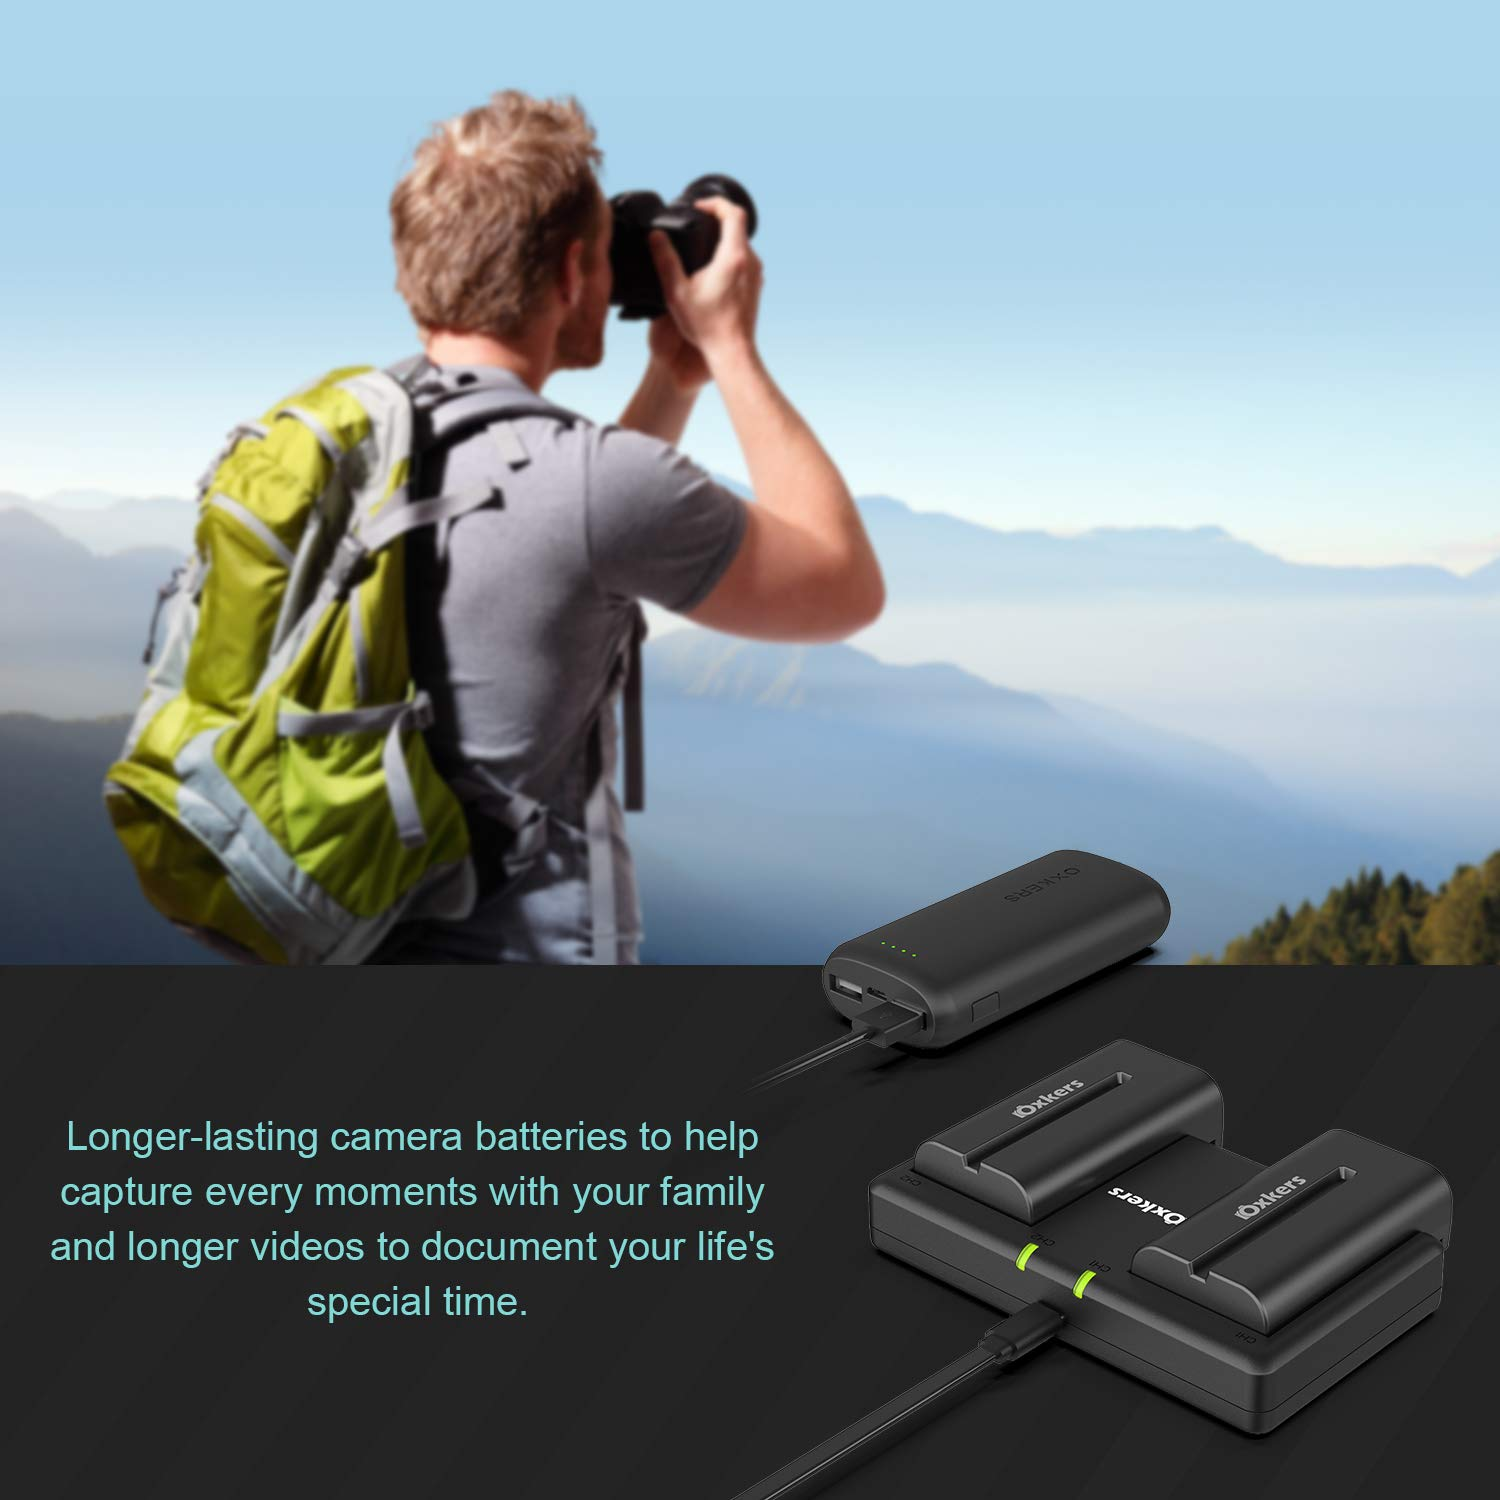 NP-F550 Battery Charger, OXKERS Battery Charger Set Camera Battery Charger for Sony NP F970, F330, F750, F770, F960, F530, F570 and More